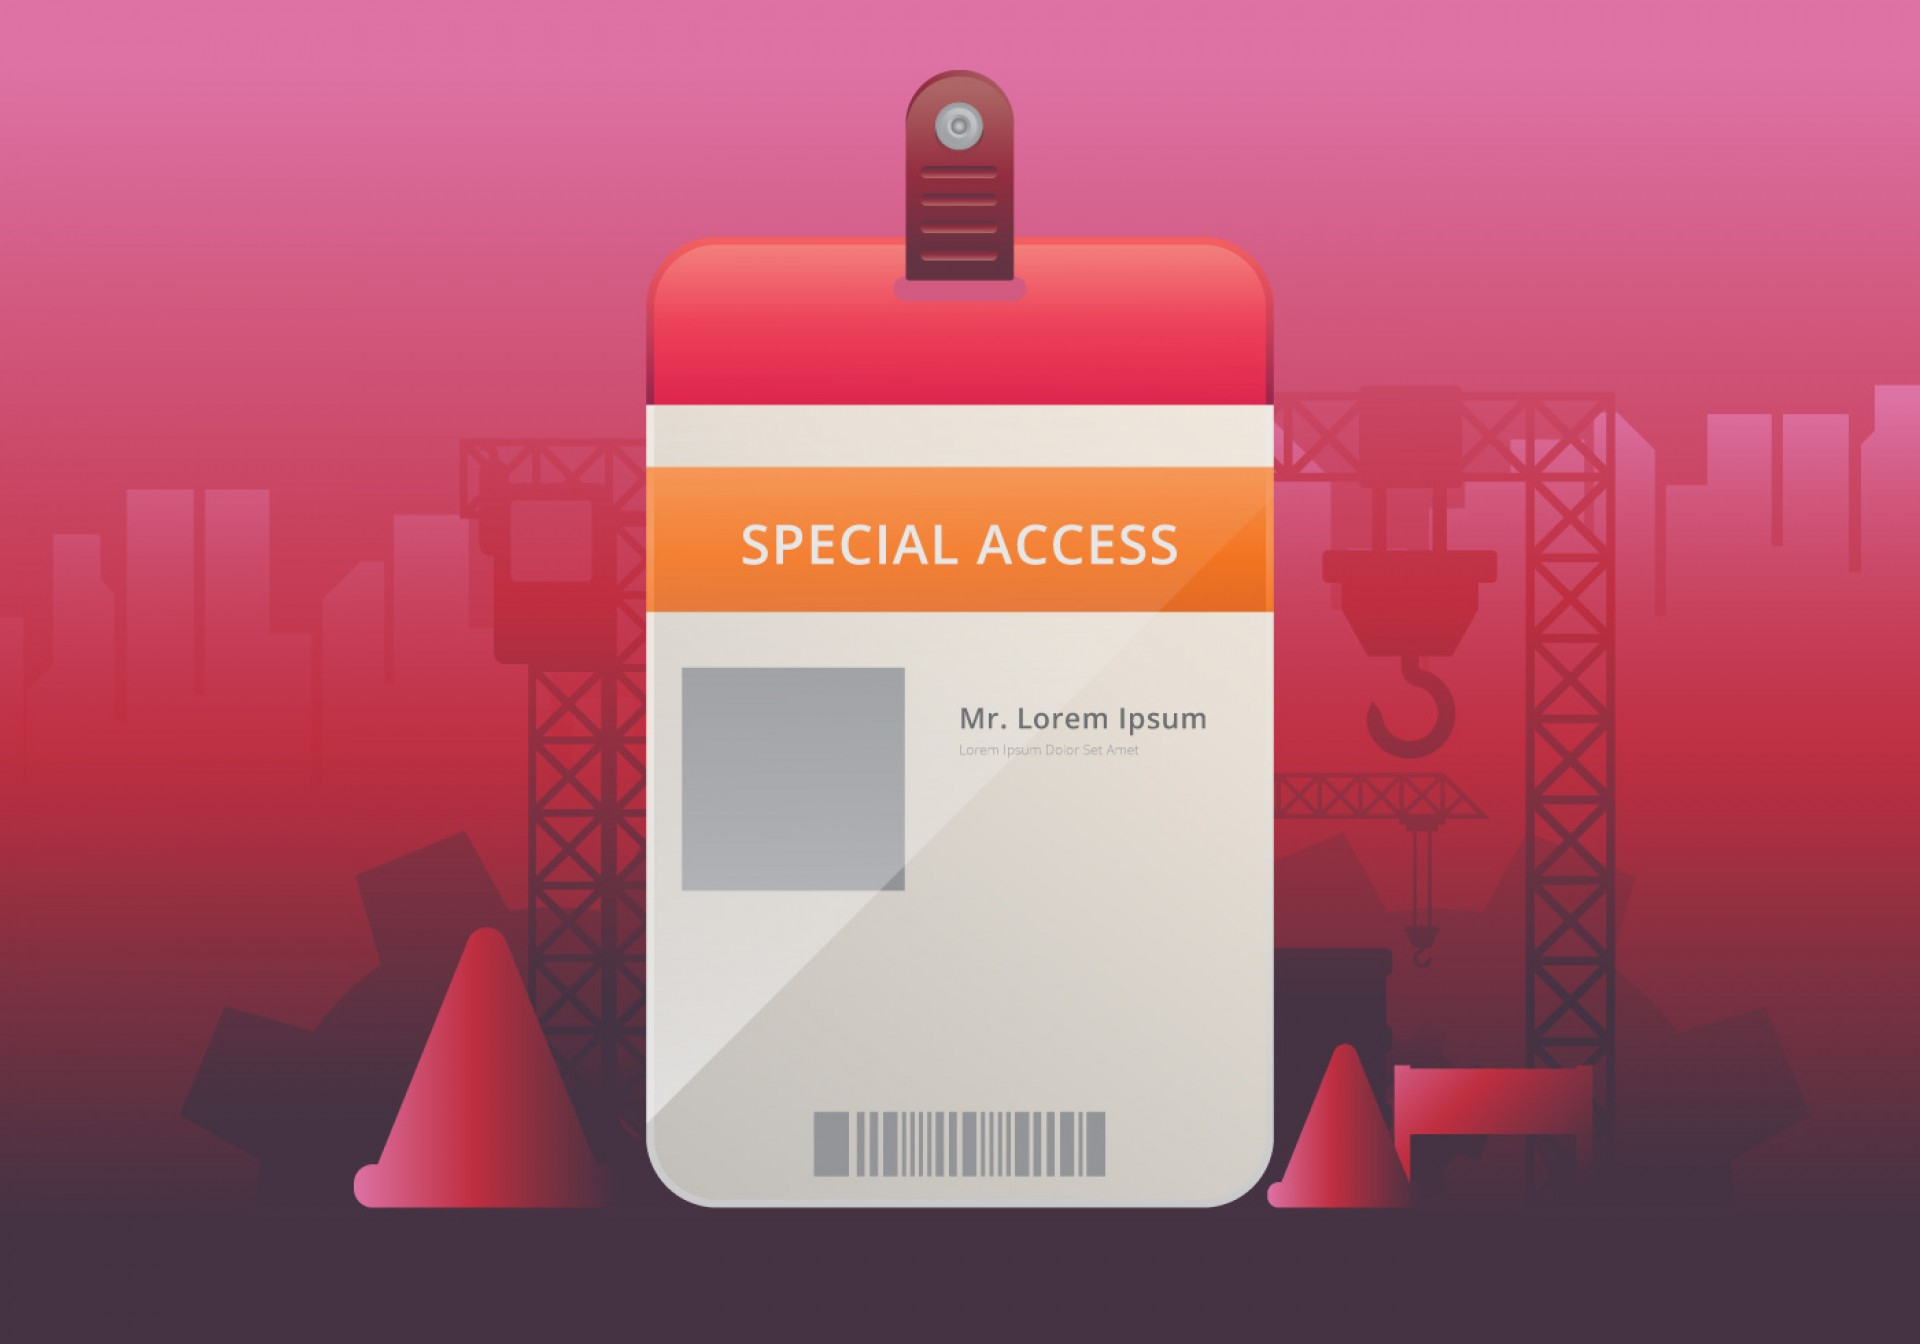 009 Rare Blank Id Card Template Highest Clarity  Design Free Download Editable1920